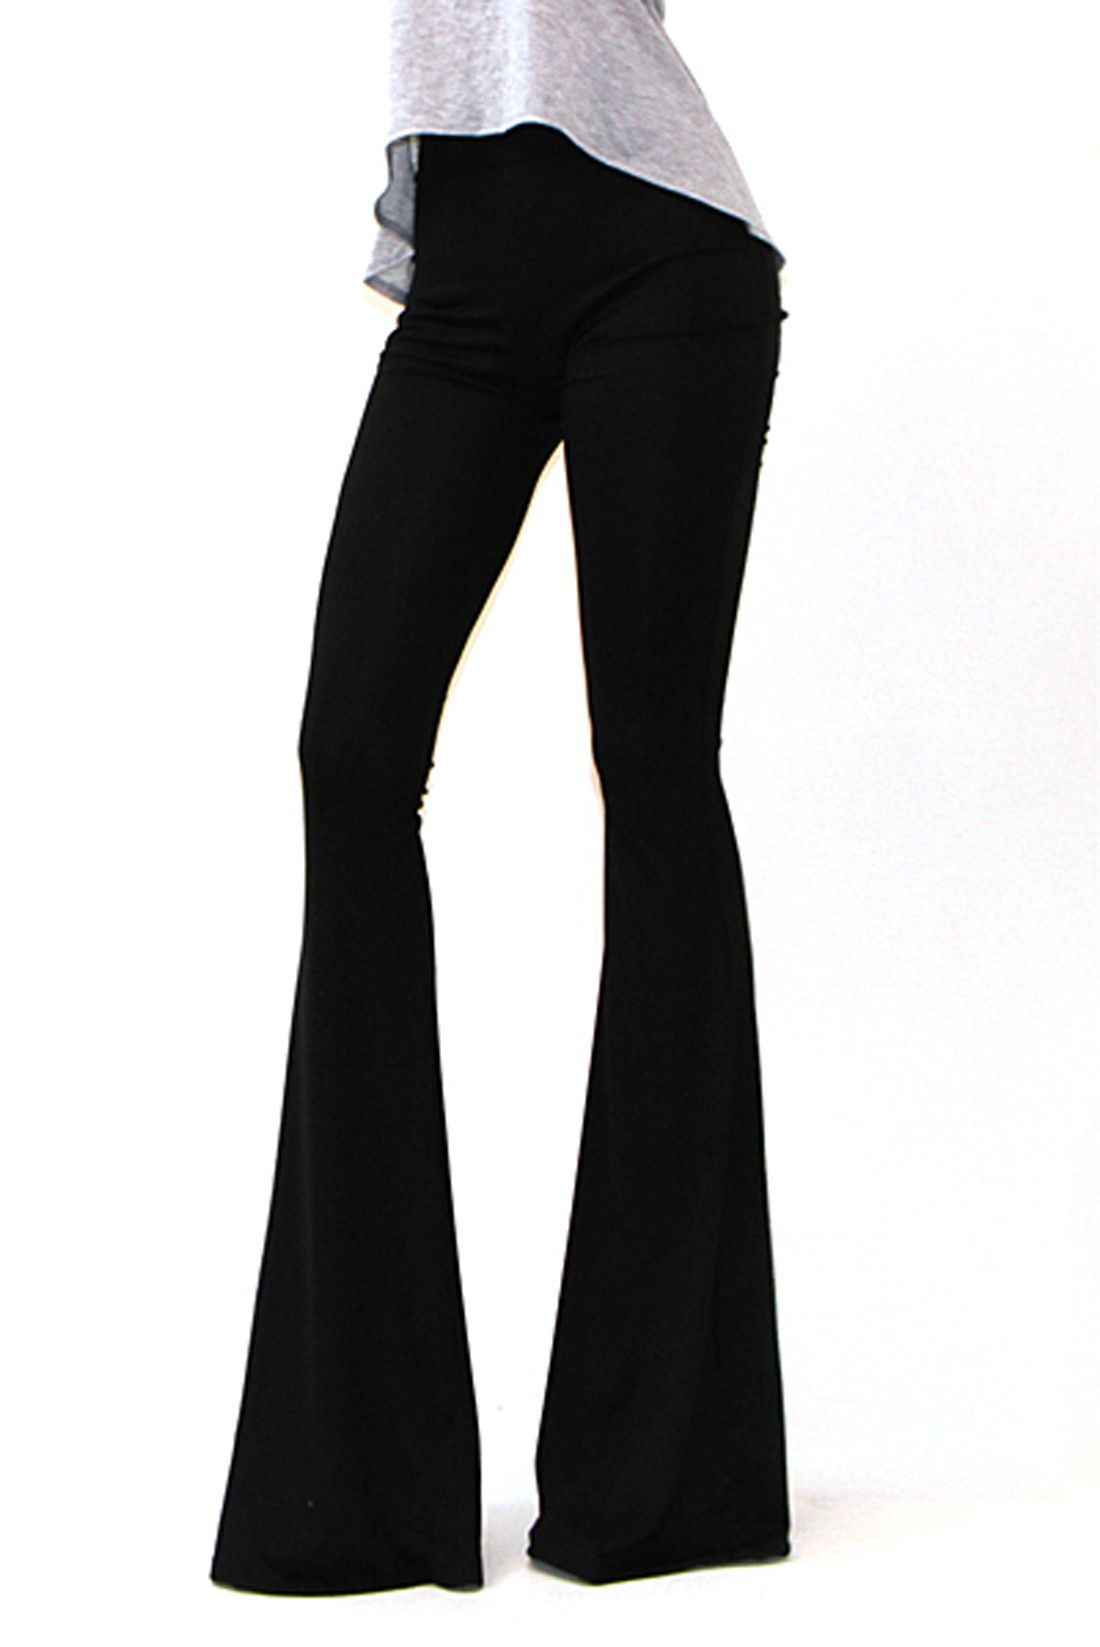 8429e03f70 Women s Printed or Solid Bell Bottom Knit Pants Flare Pants ...